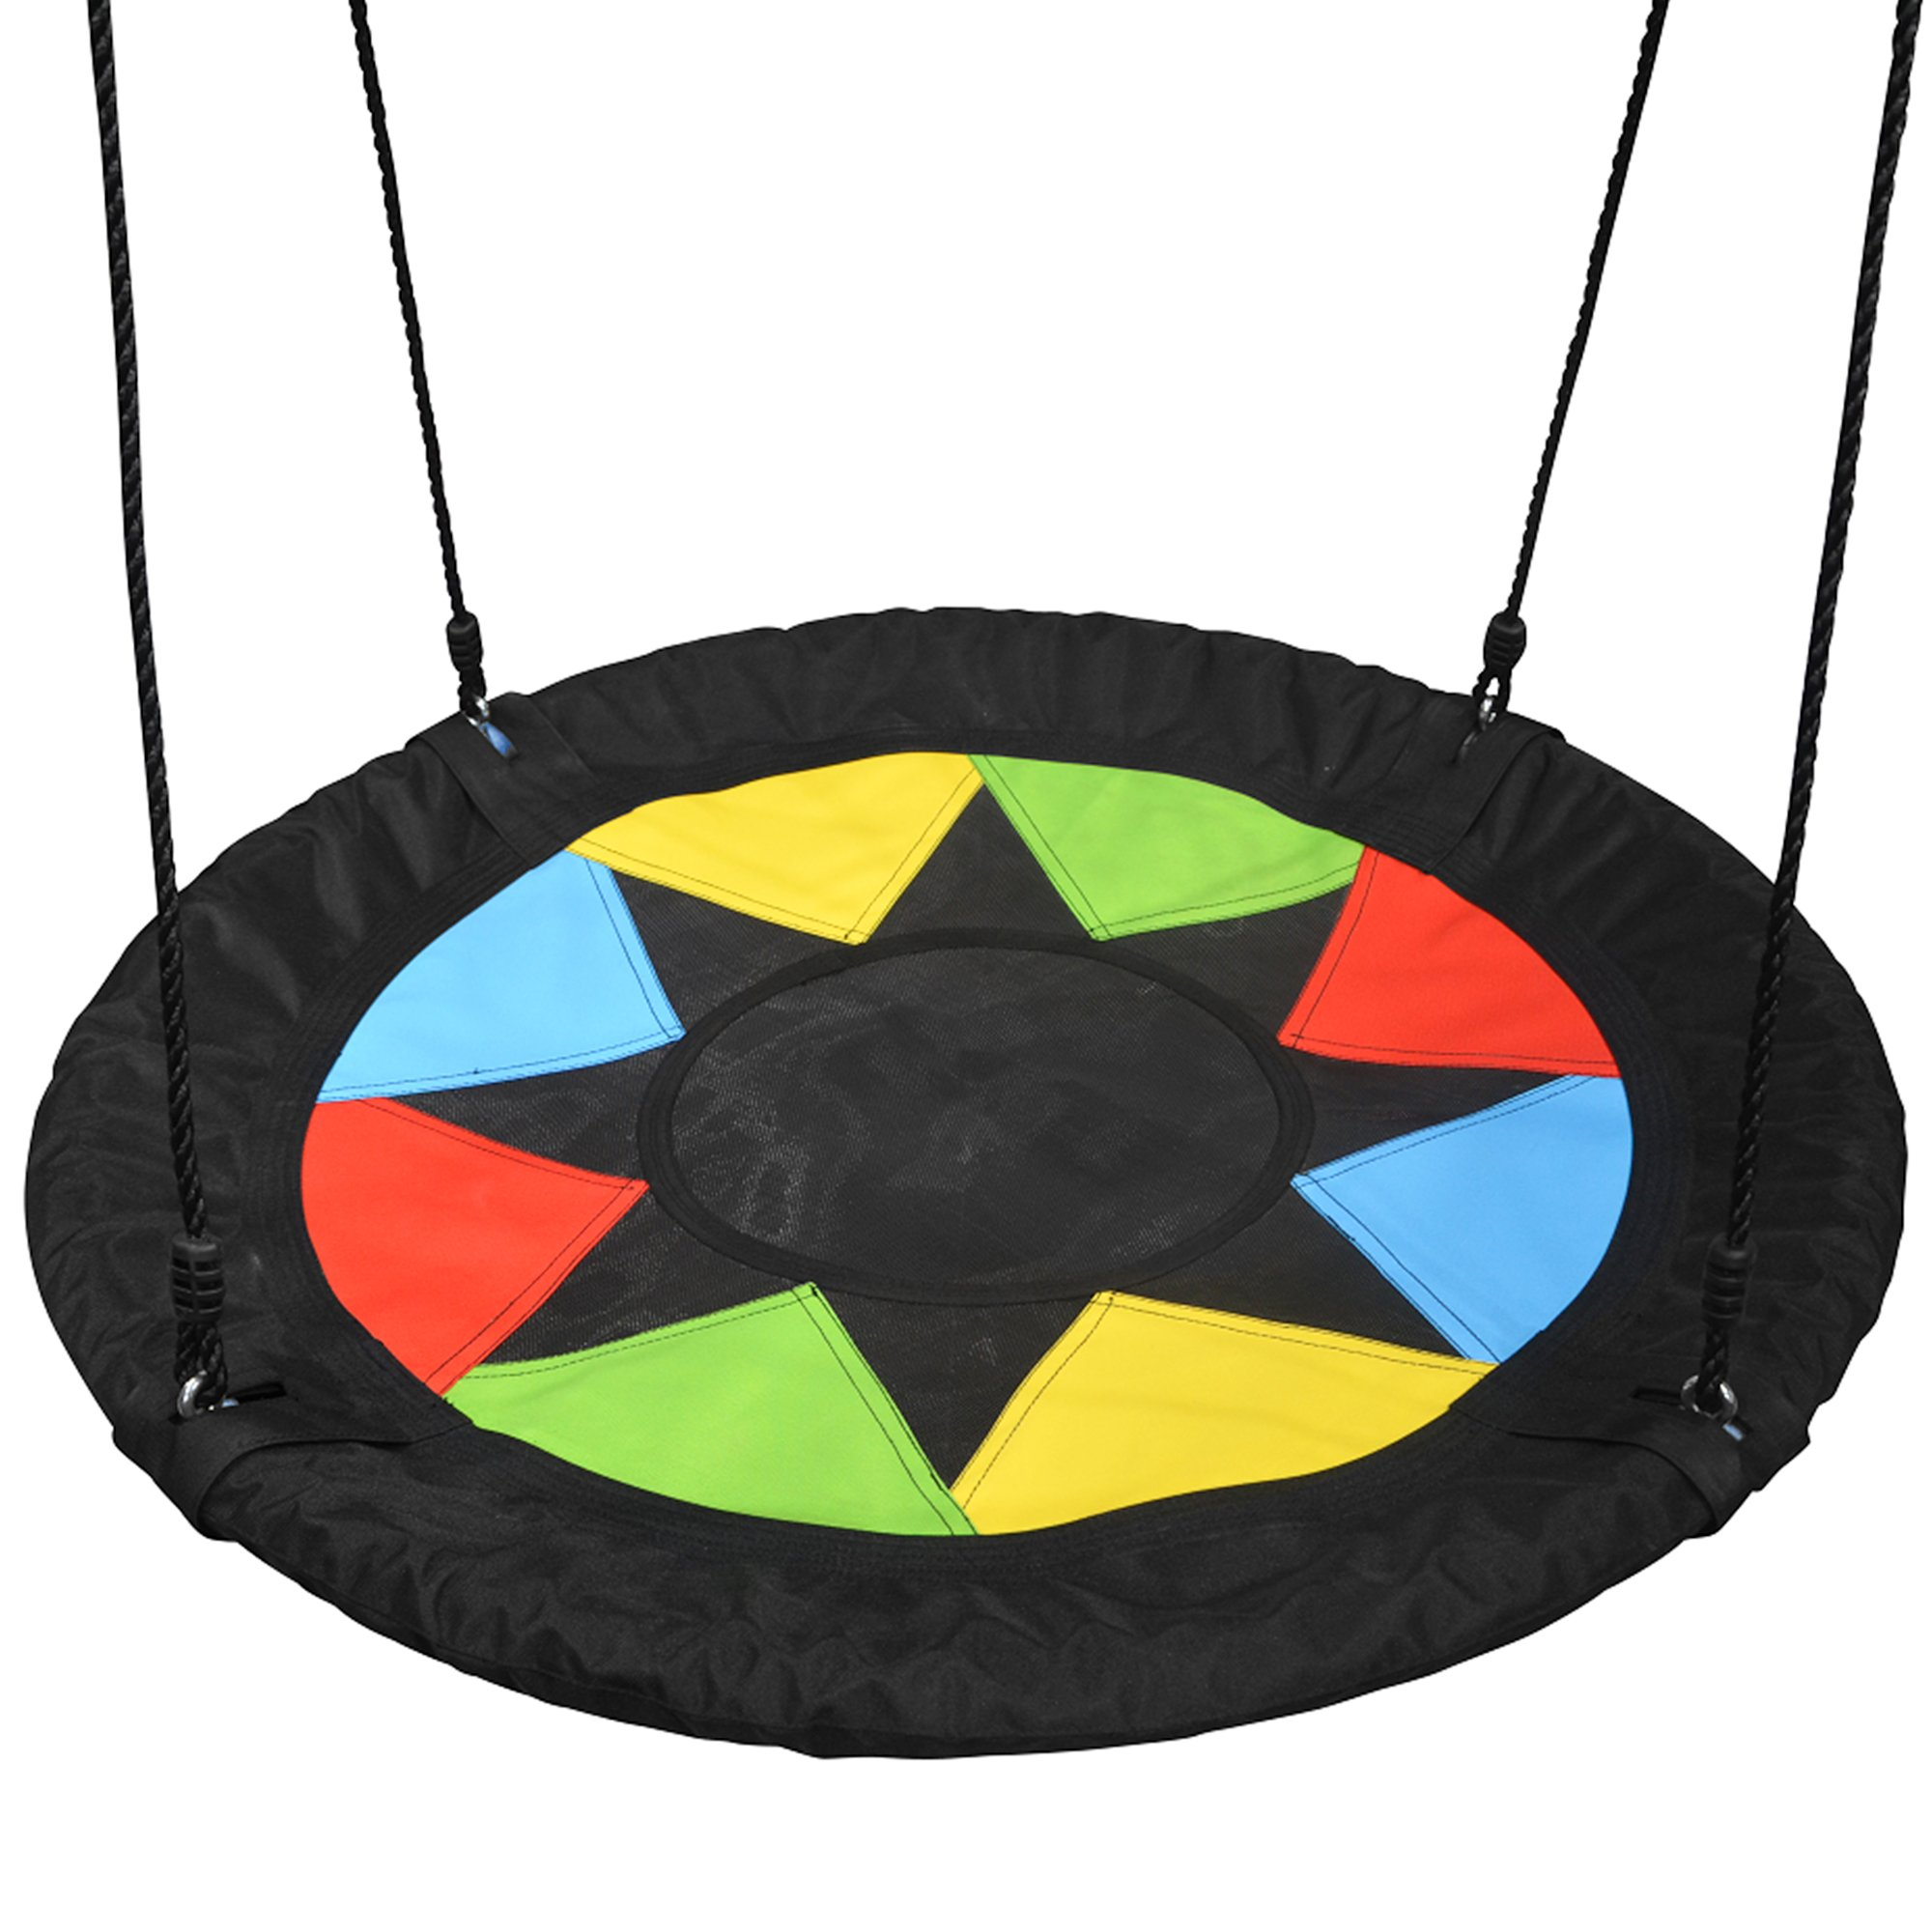 Play Platoon Flying Saucer Tree Swing - 400 lb Weight Capacity, Fully Assembled, Easy to Install by Play Platoon